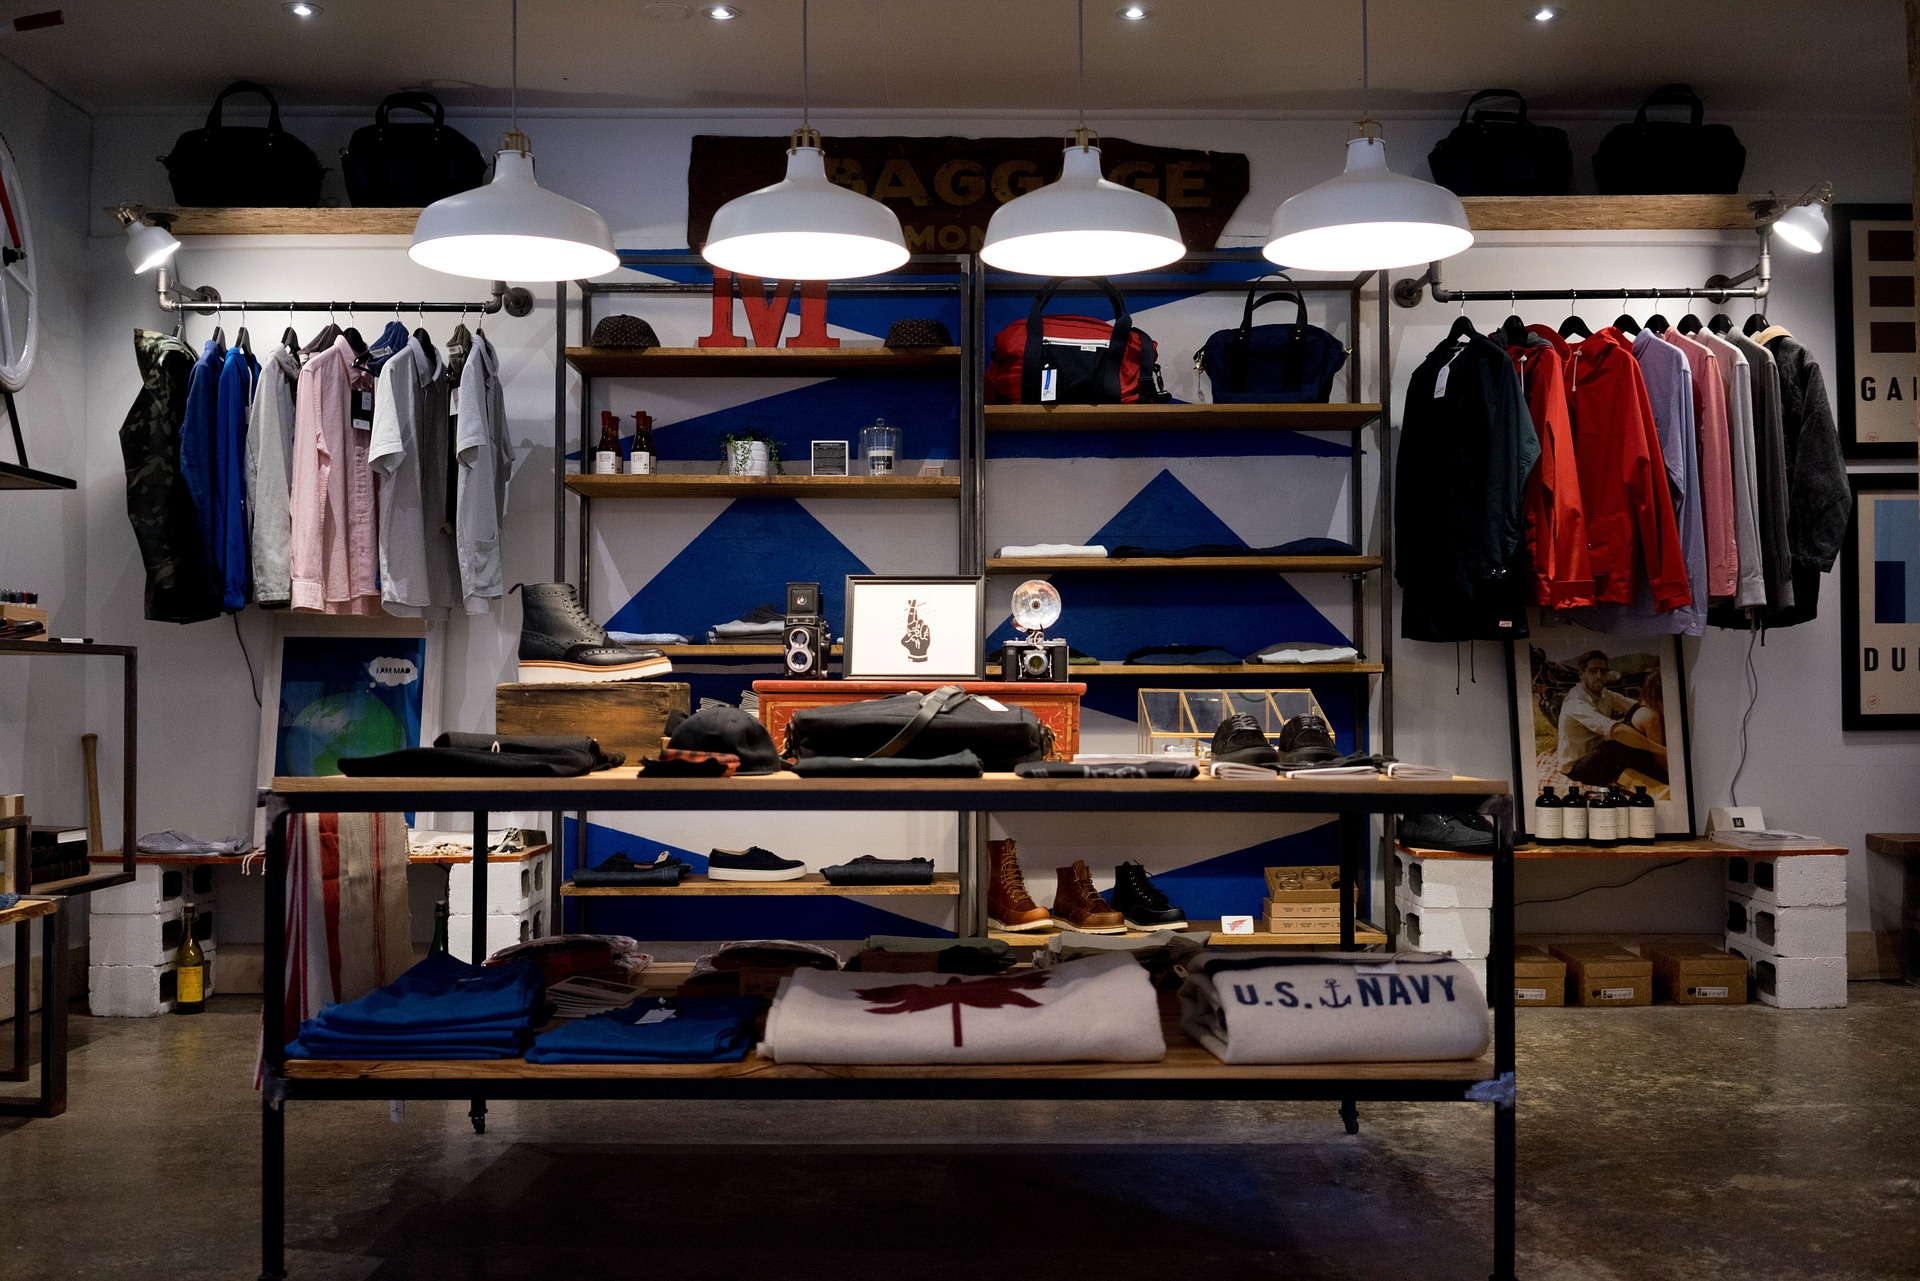 A retail boutique with clothing, shoes, and decor items displayed.